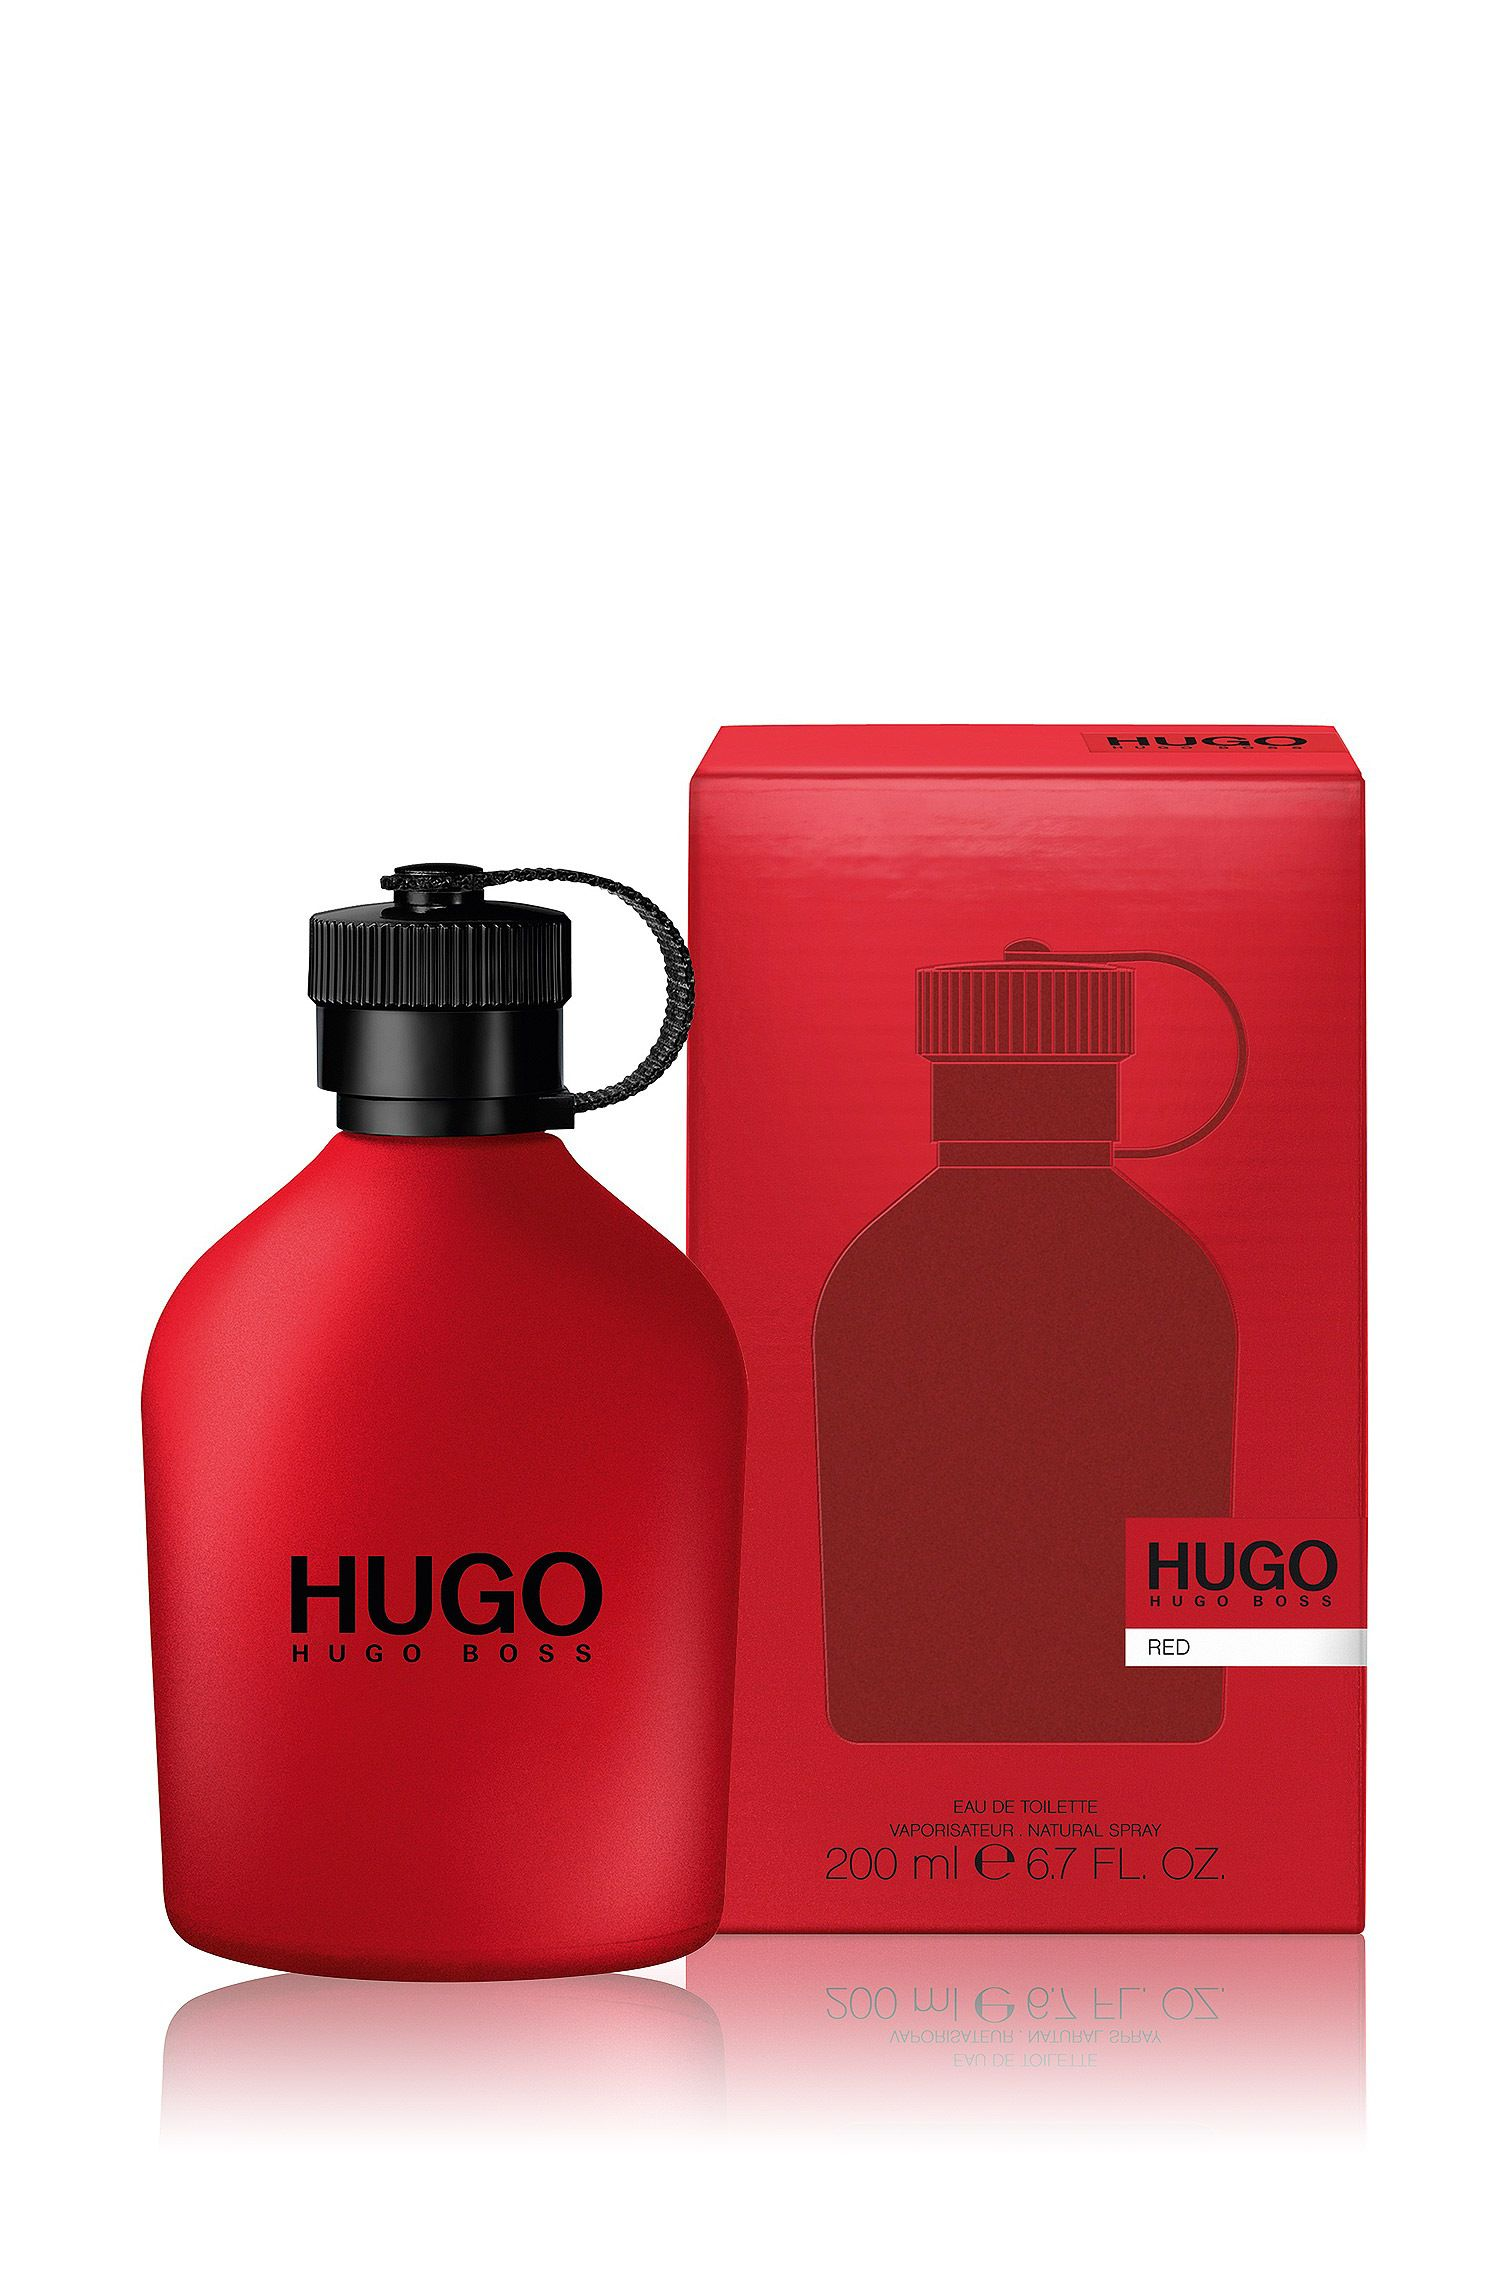 Eau de toilette HUGO Red 200 ml